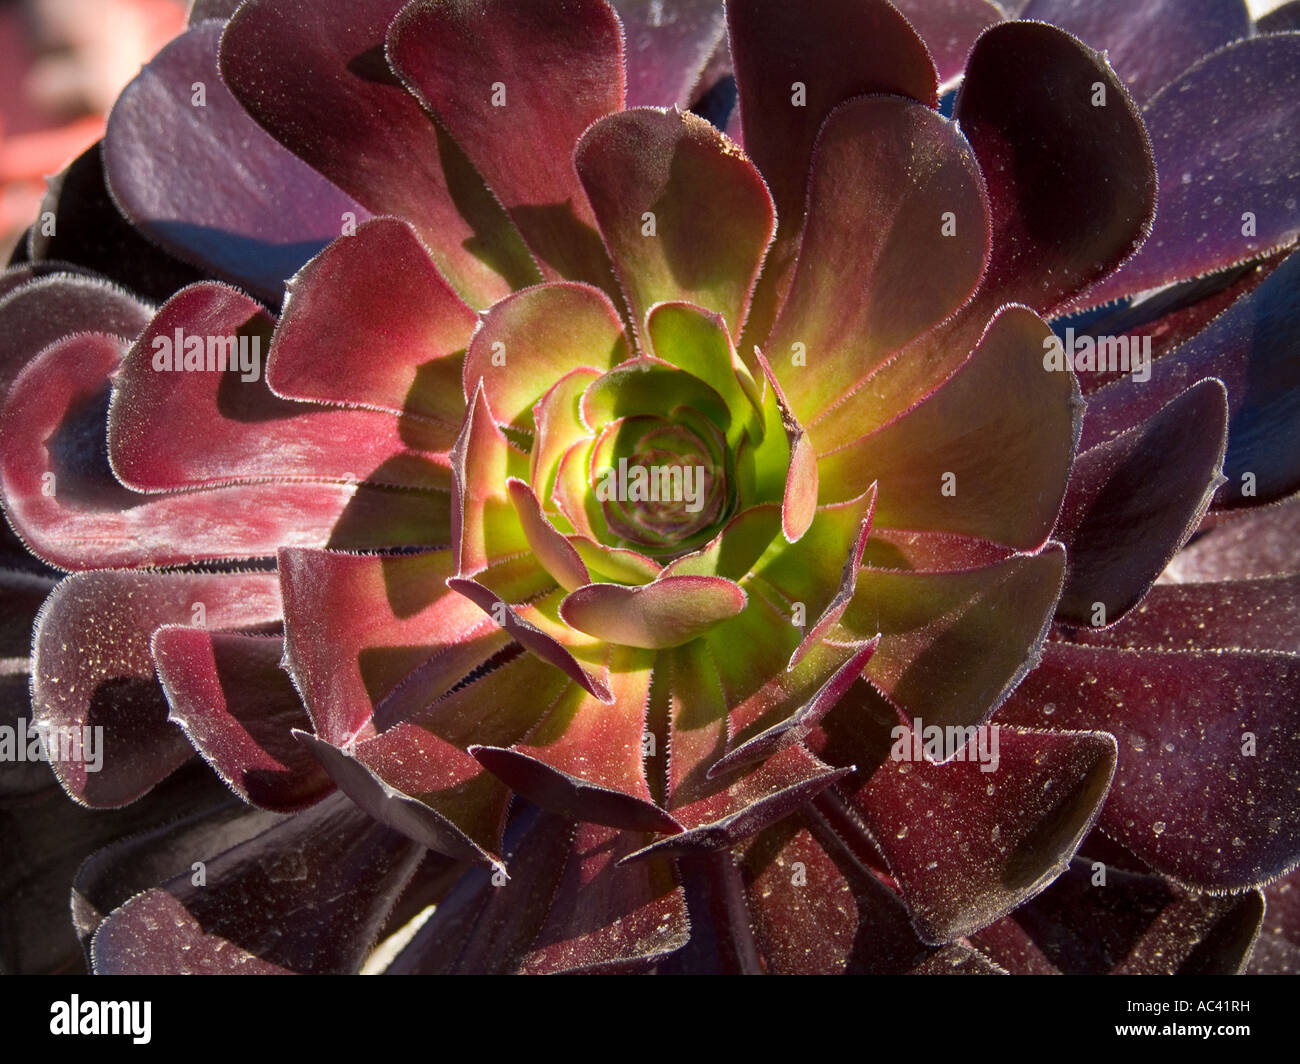 Close up of a beautiful black rose or echeveria flower stock photo close up of a beautiful black rose or echeveria flower izmirmasajfo